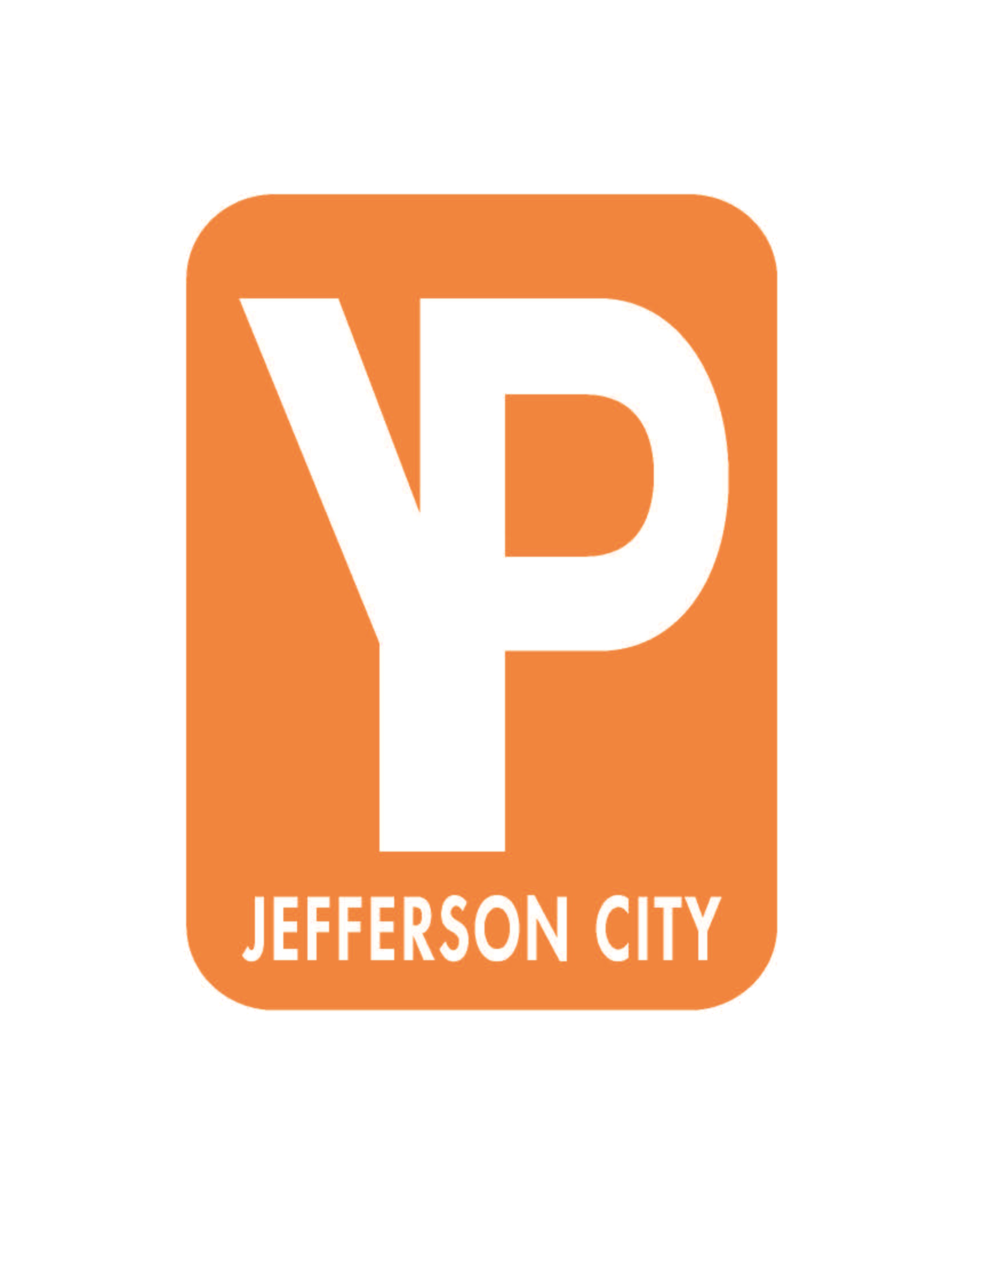 NEW_YP Logo (3).png